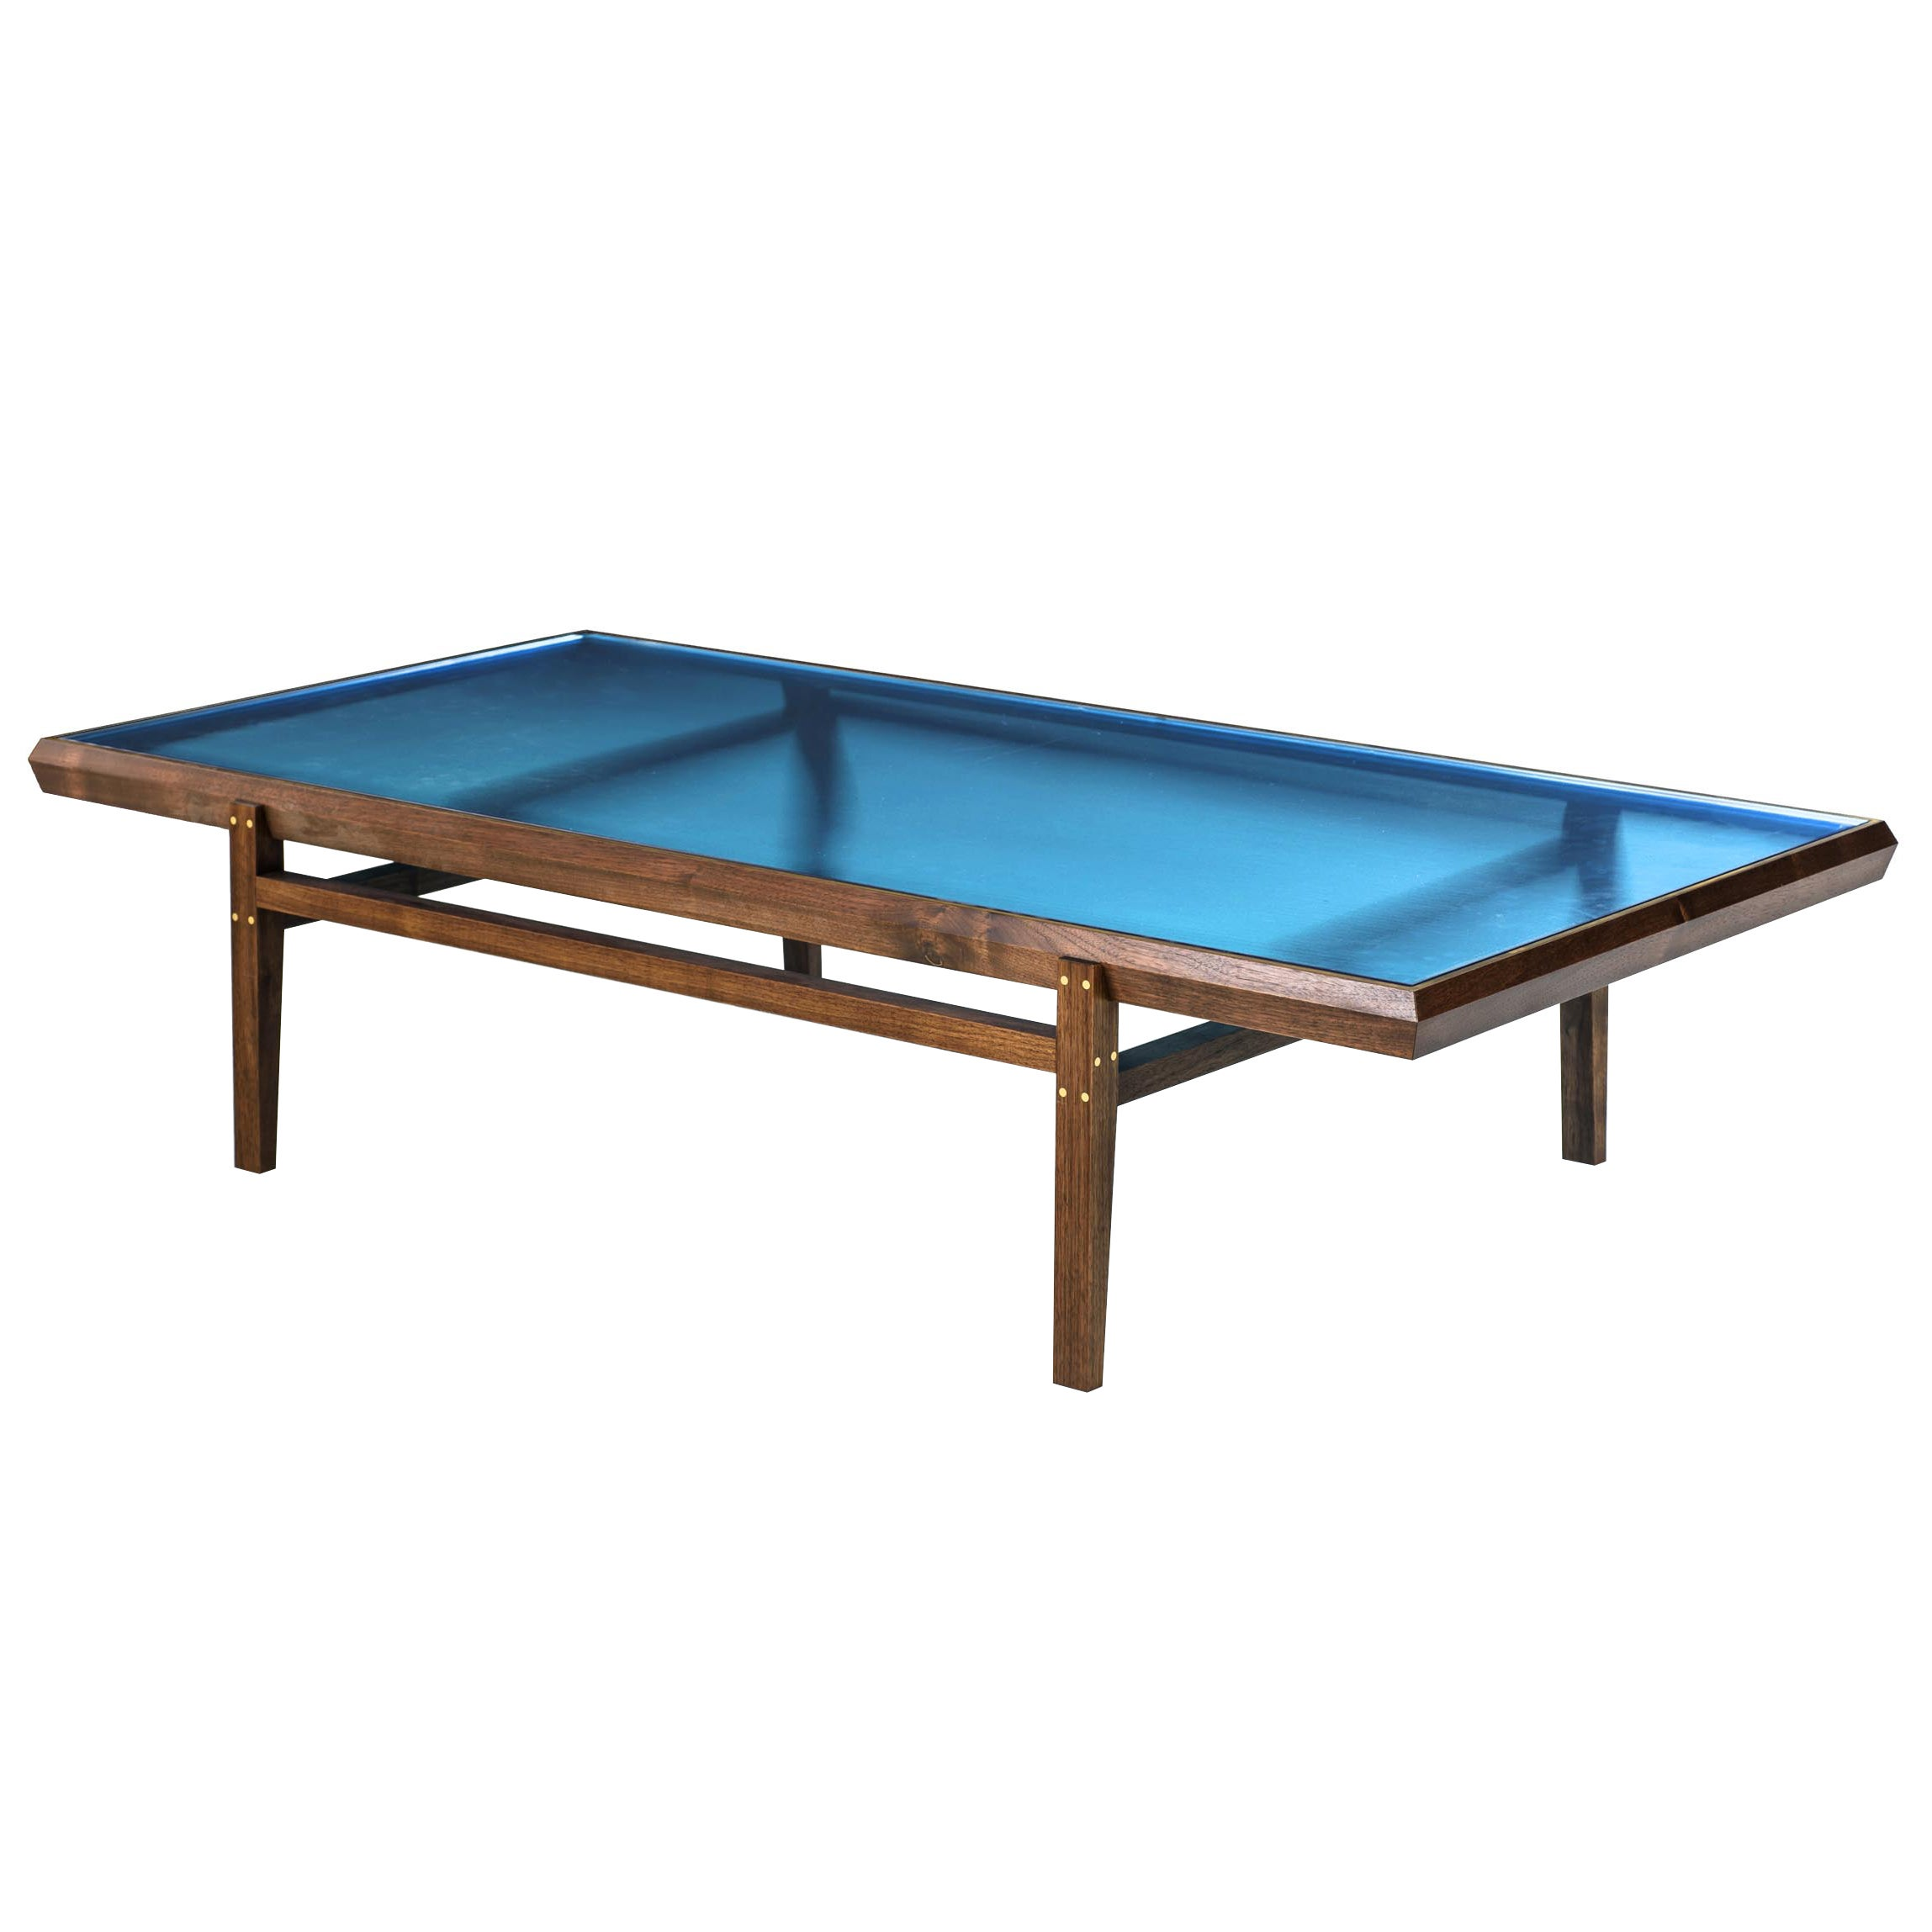 Pintor Coffee Table, Walnut Frame with Brass Inlay, Blue Glass Top